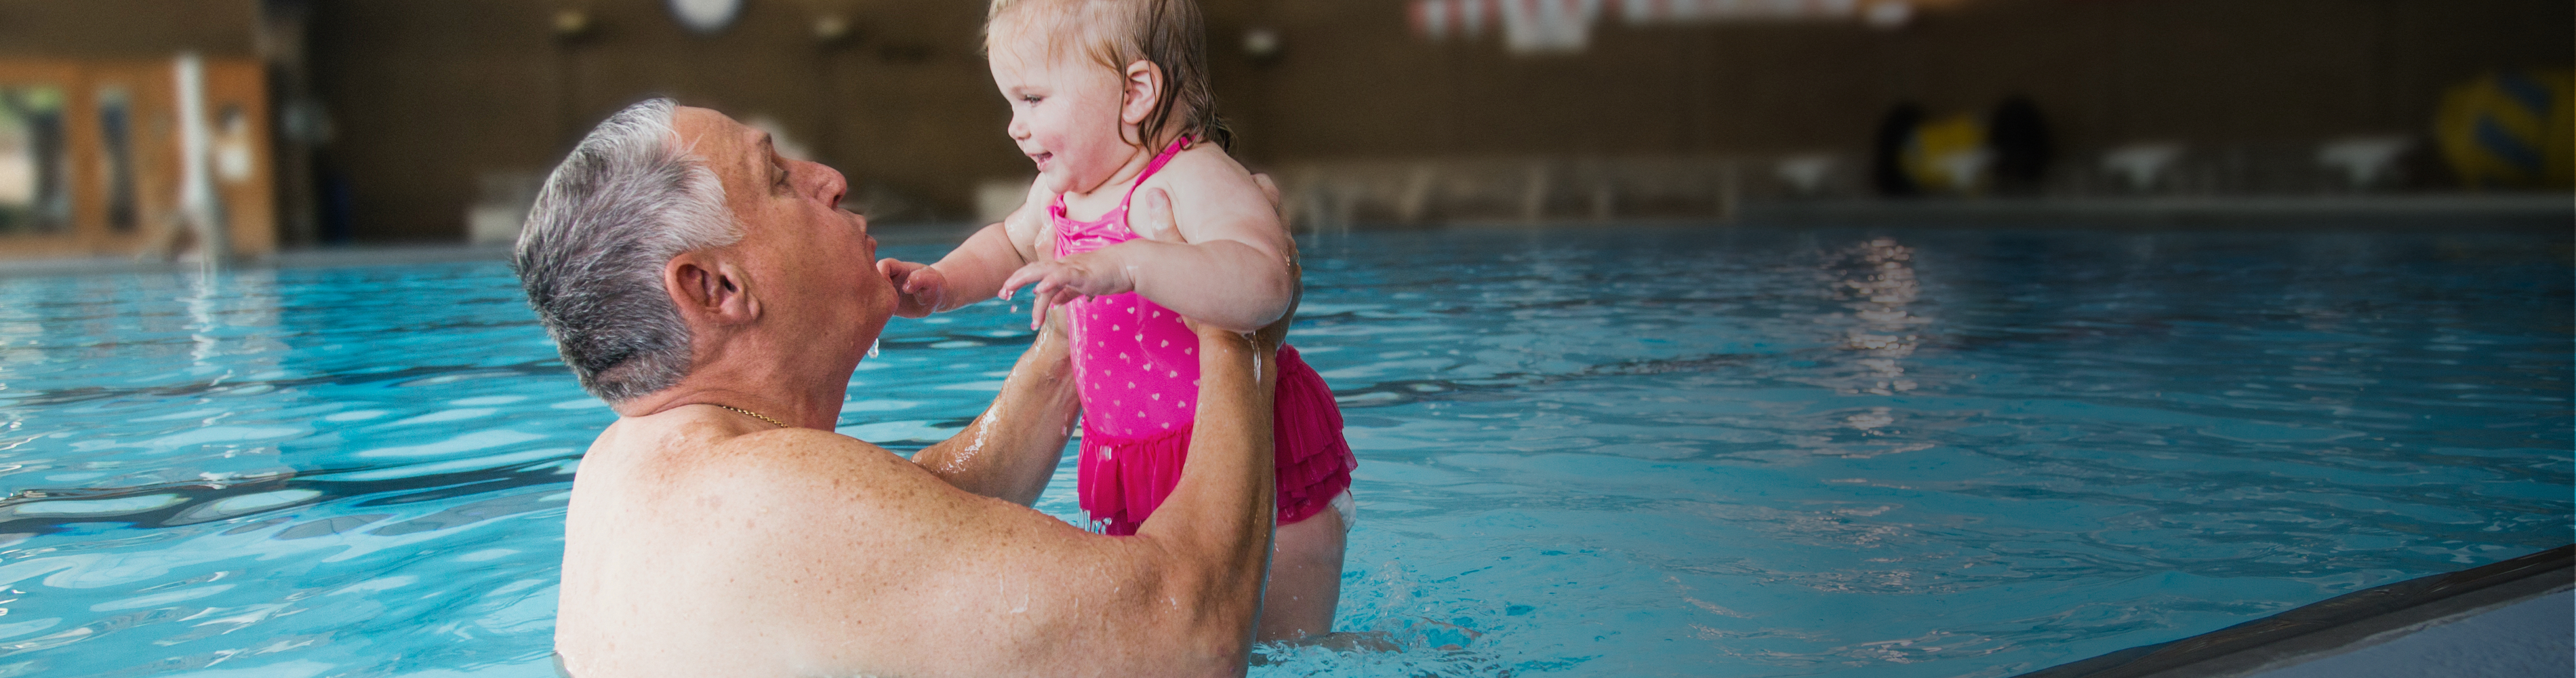 Grandfather playing in the pool with his granddaughter